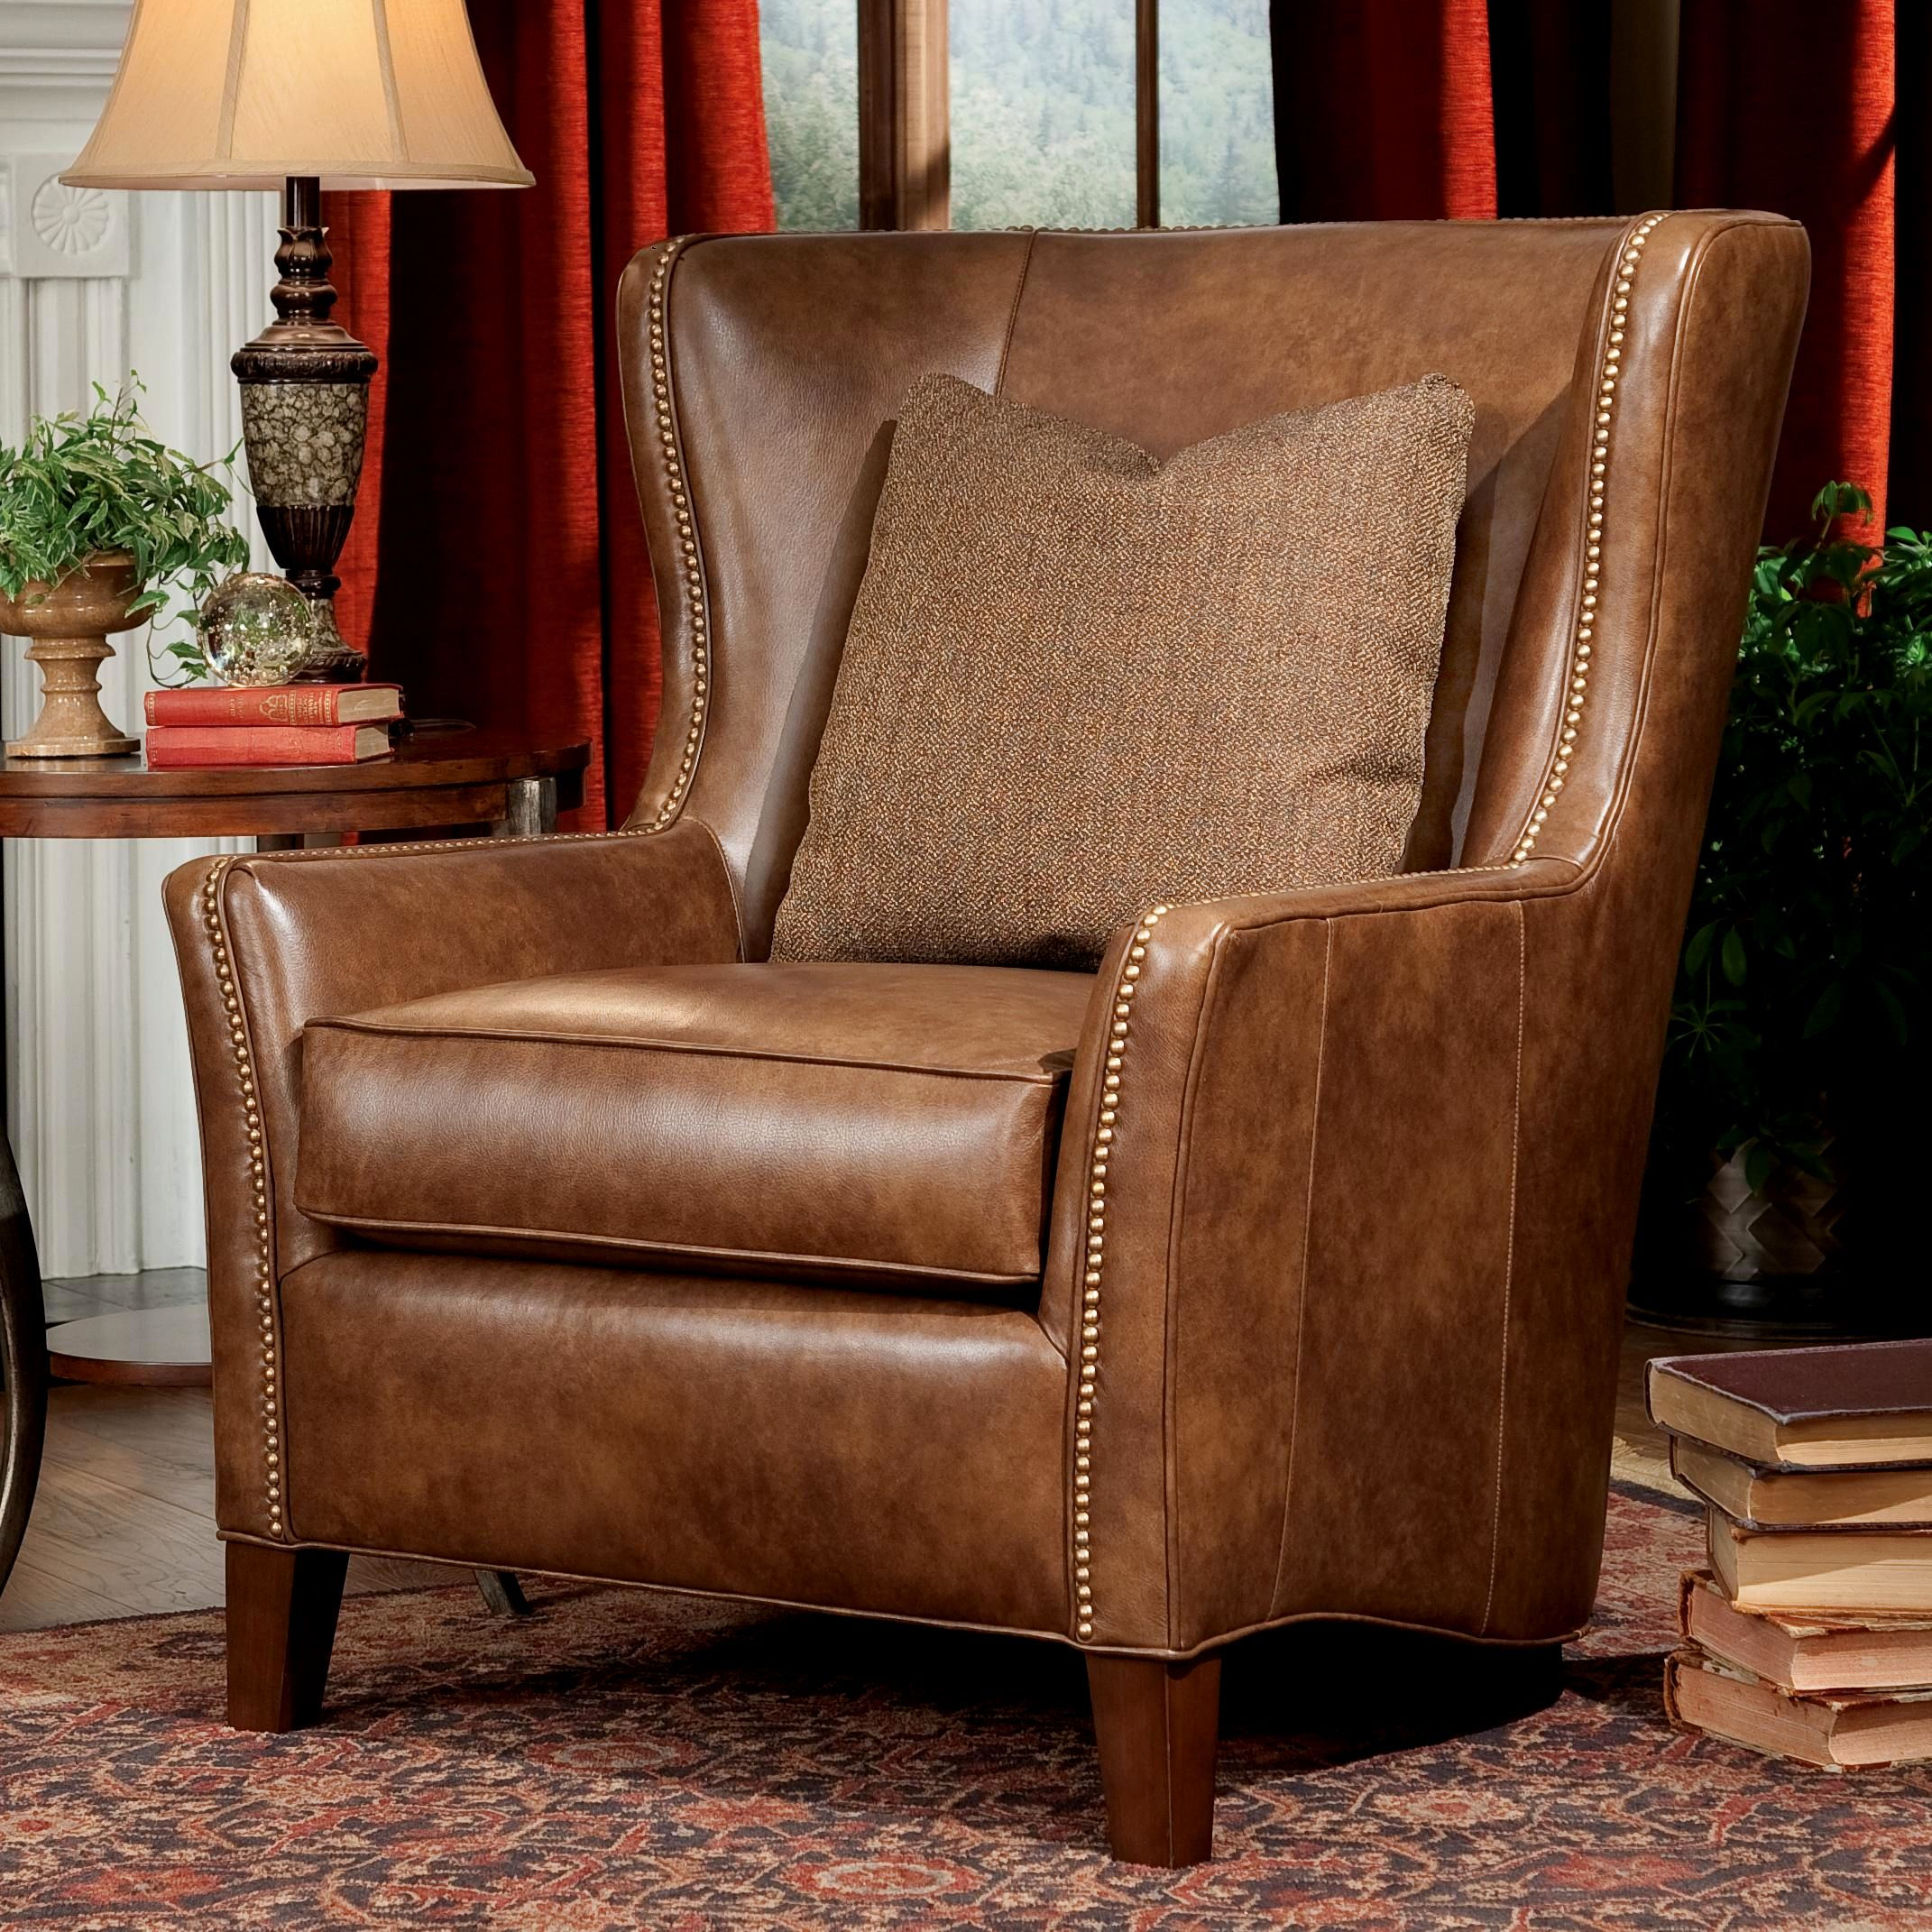 fantastic american leather sofa plan-Sensational American Leather sofa Model